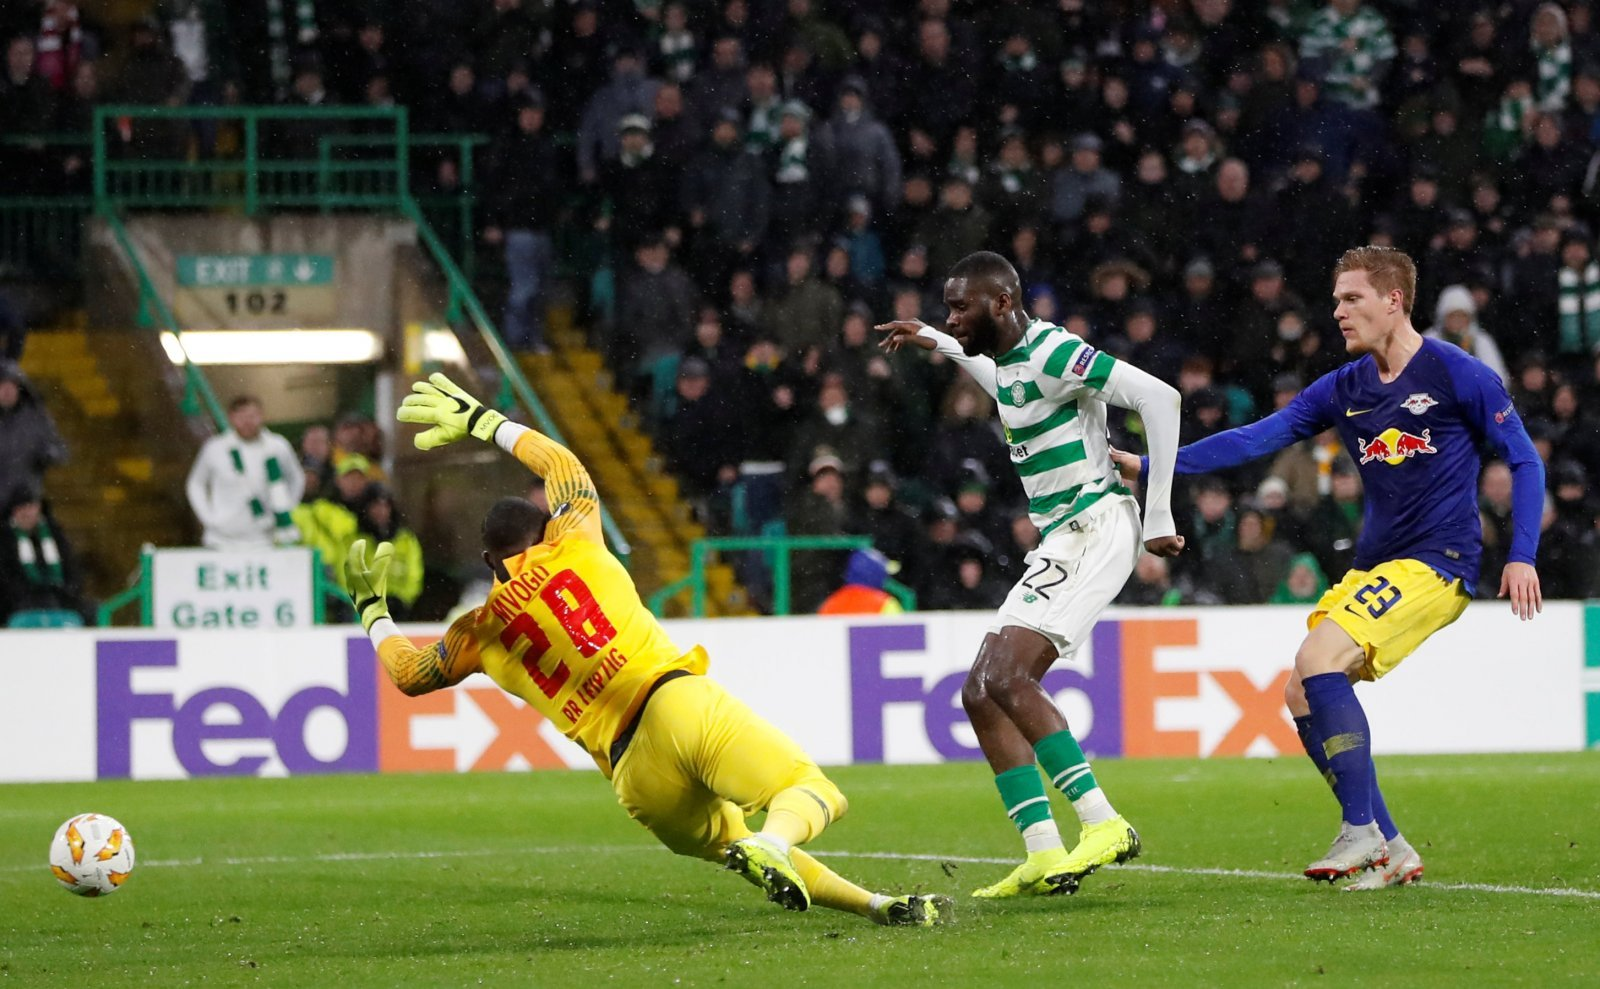 Celtic team news: Odsonne Edouard unavailable for Dundee encounter